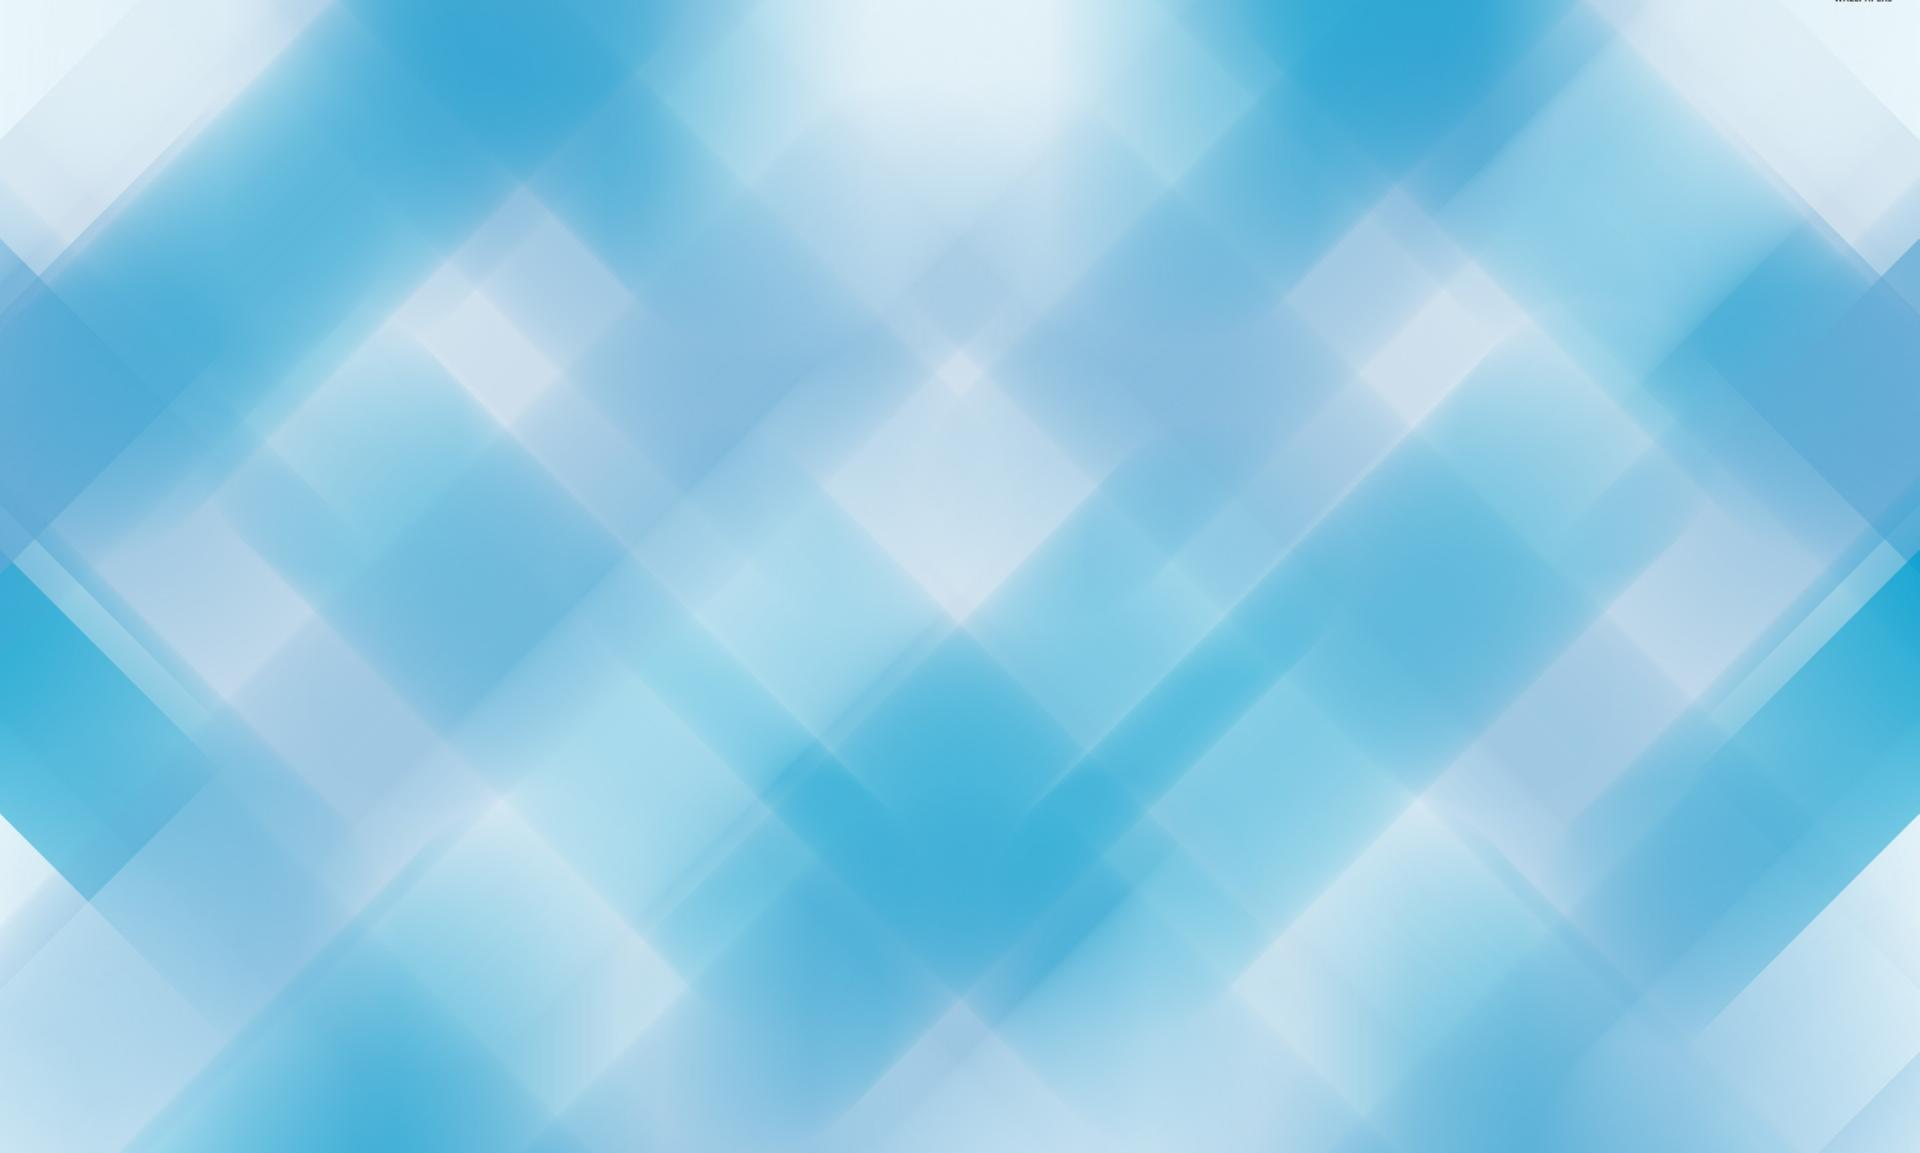 Blue blurry tiles at 640 x 960 iPhone 4 size wallpapers HD quality